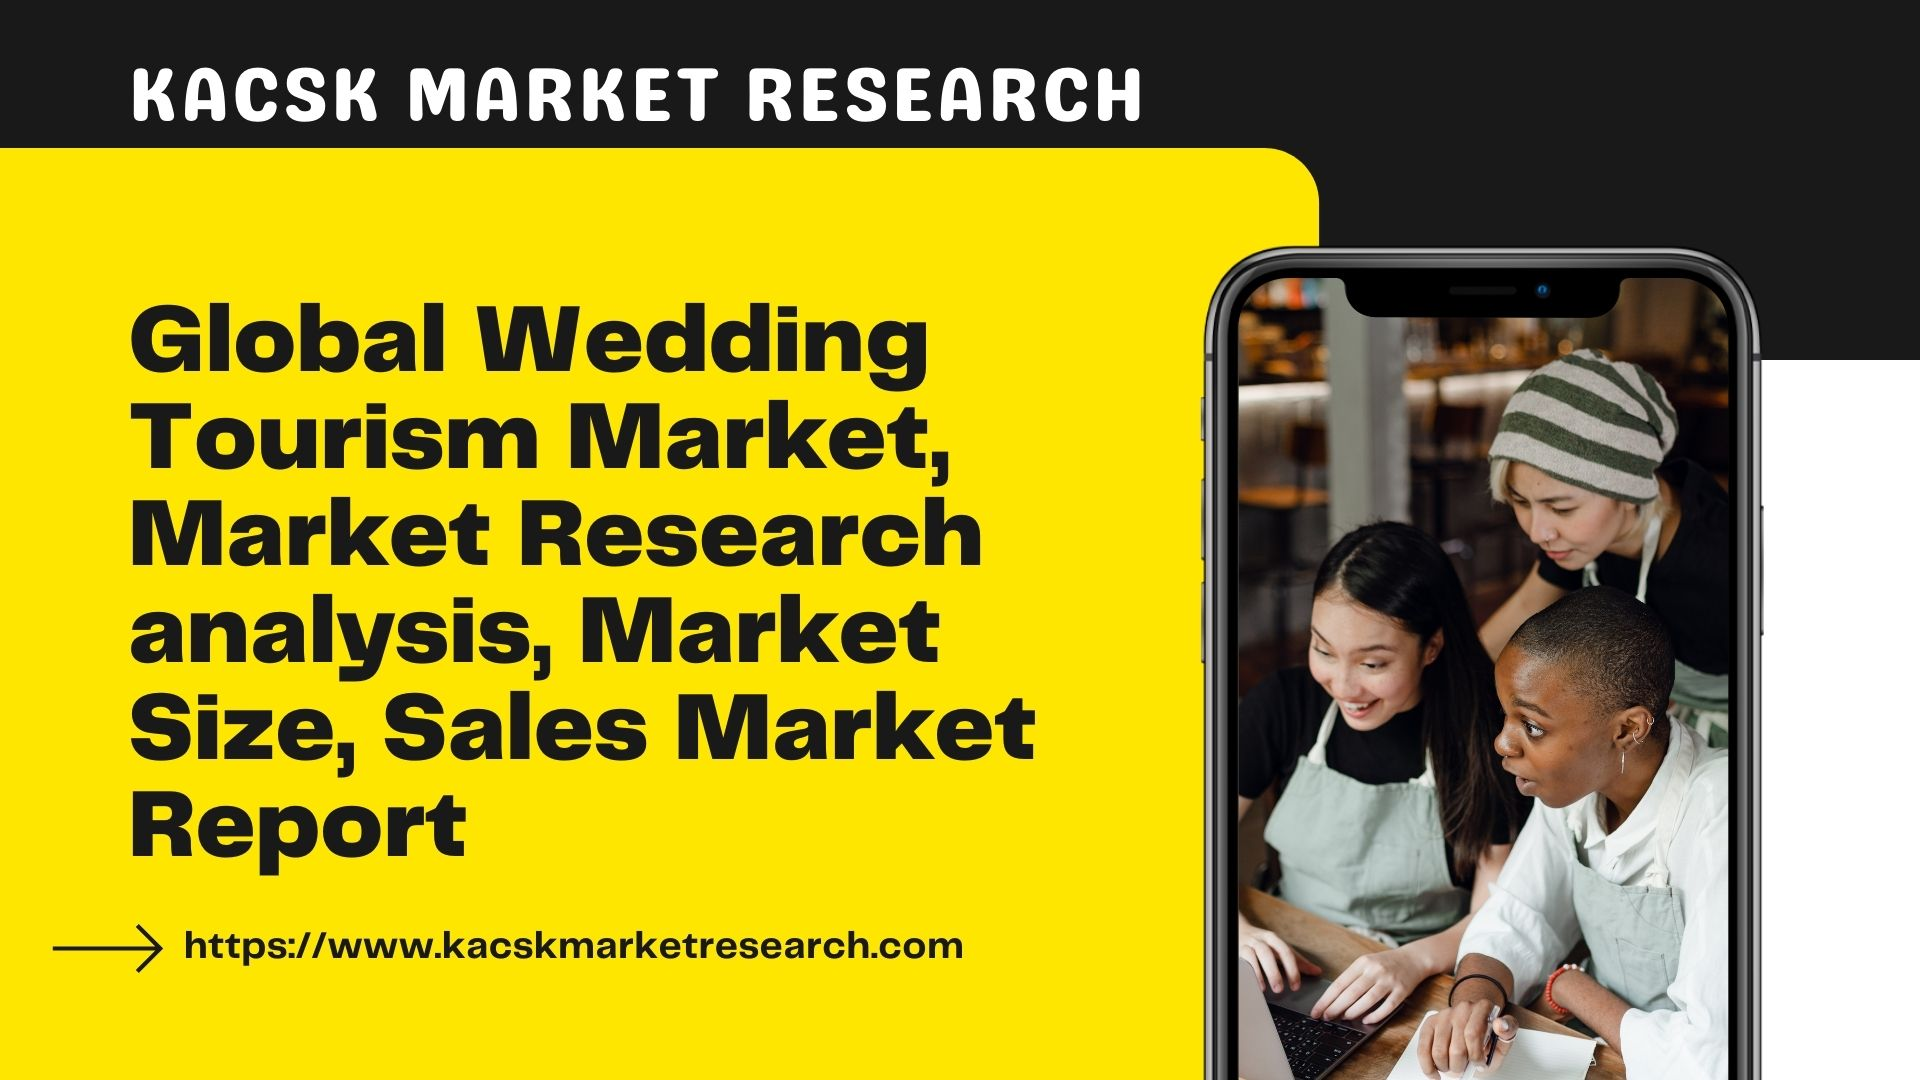 Wedding Tourism Market, Market Research analysis